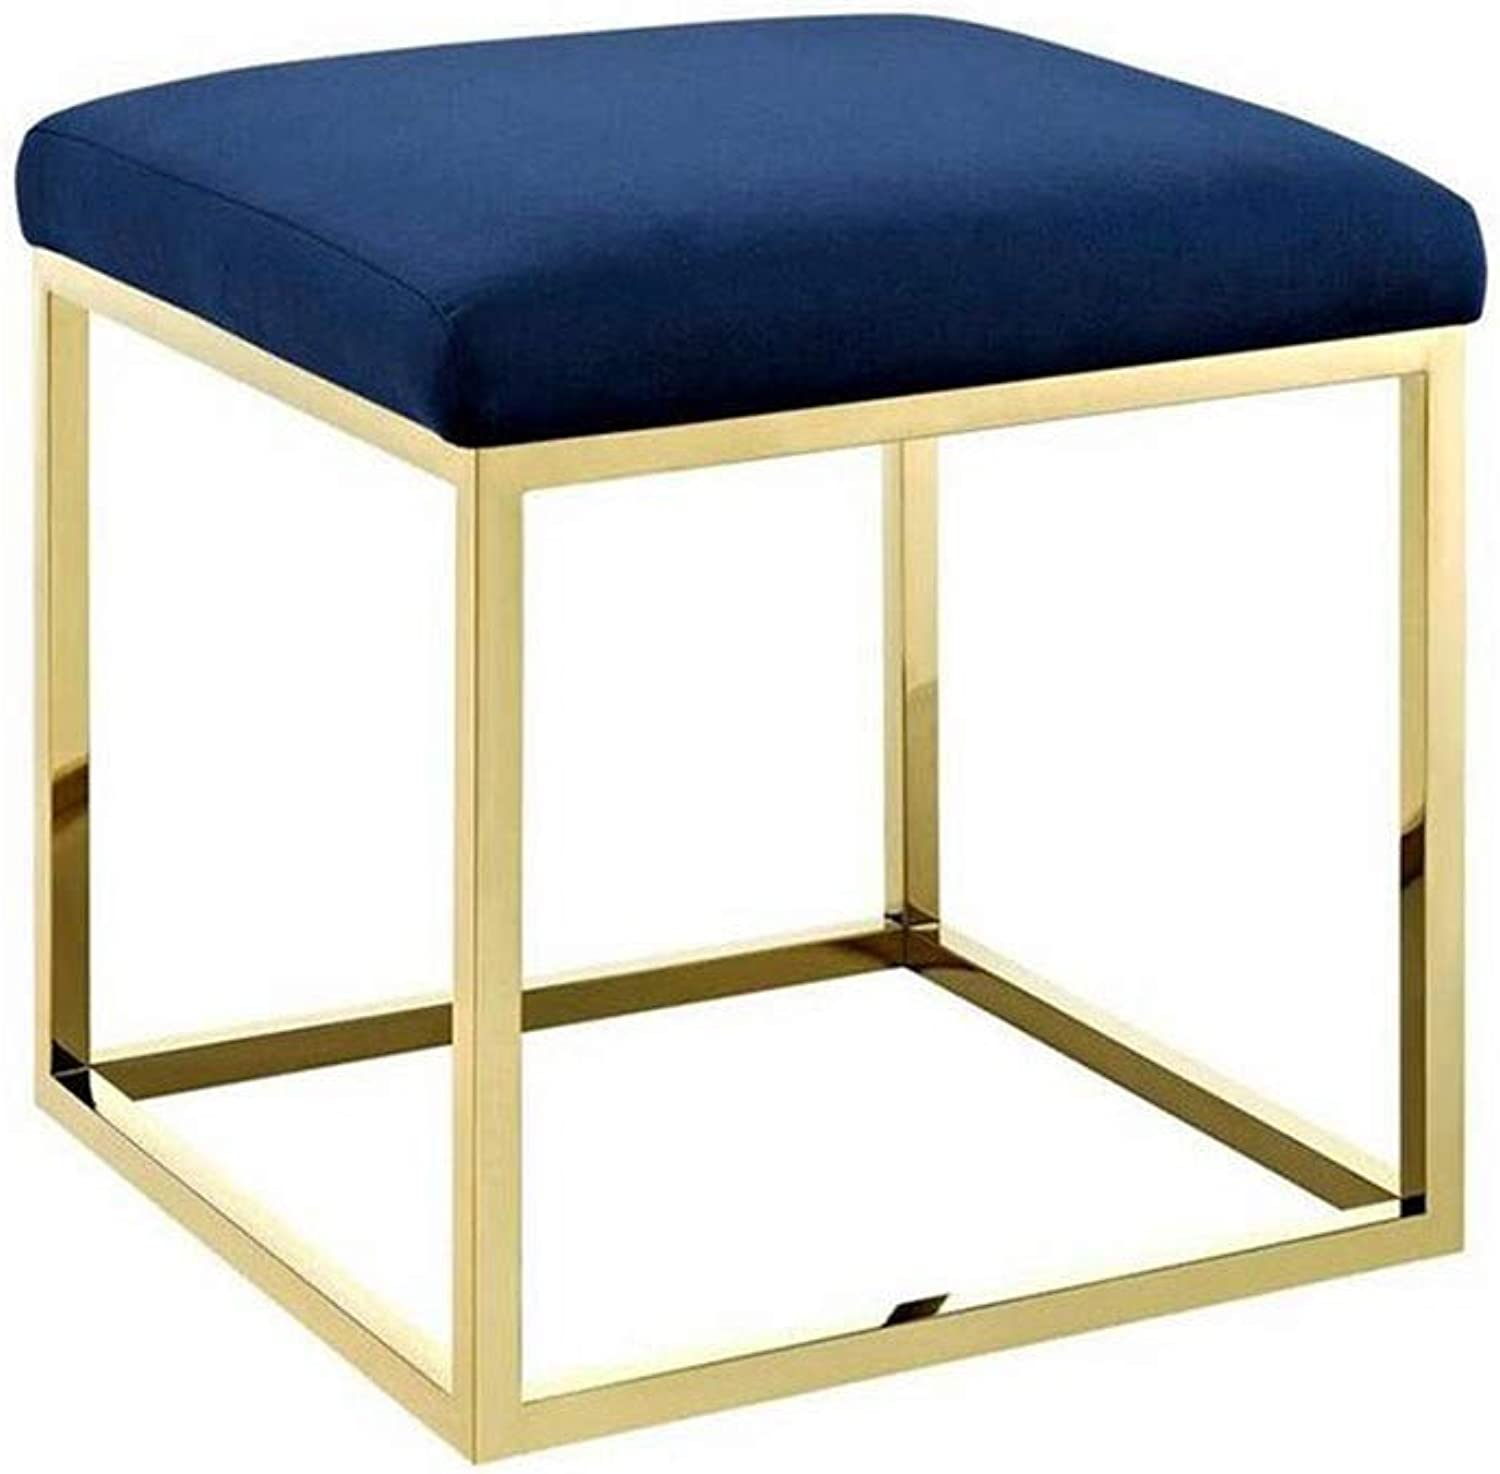 QIQI-LIFE Nordic Metal Small Square Stool Vanity Stool Change shoes Bench Single Living Room Sofa Stool (color   Dark bluee)